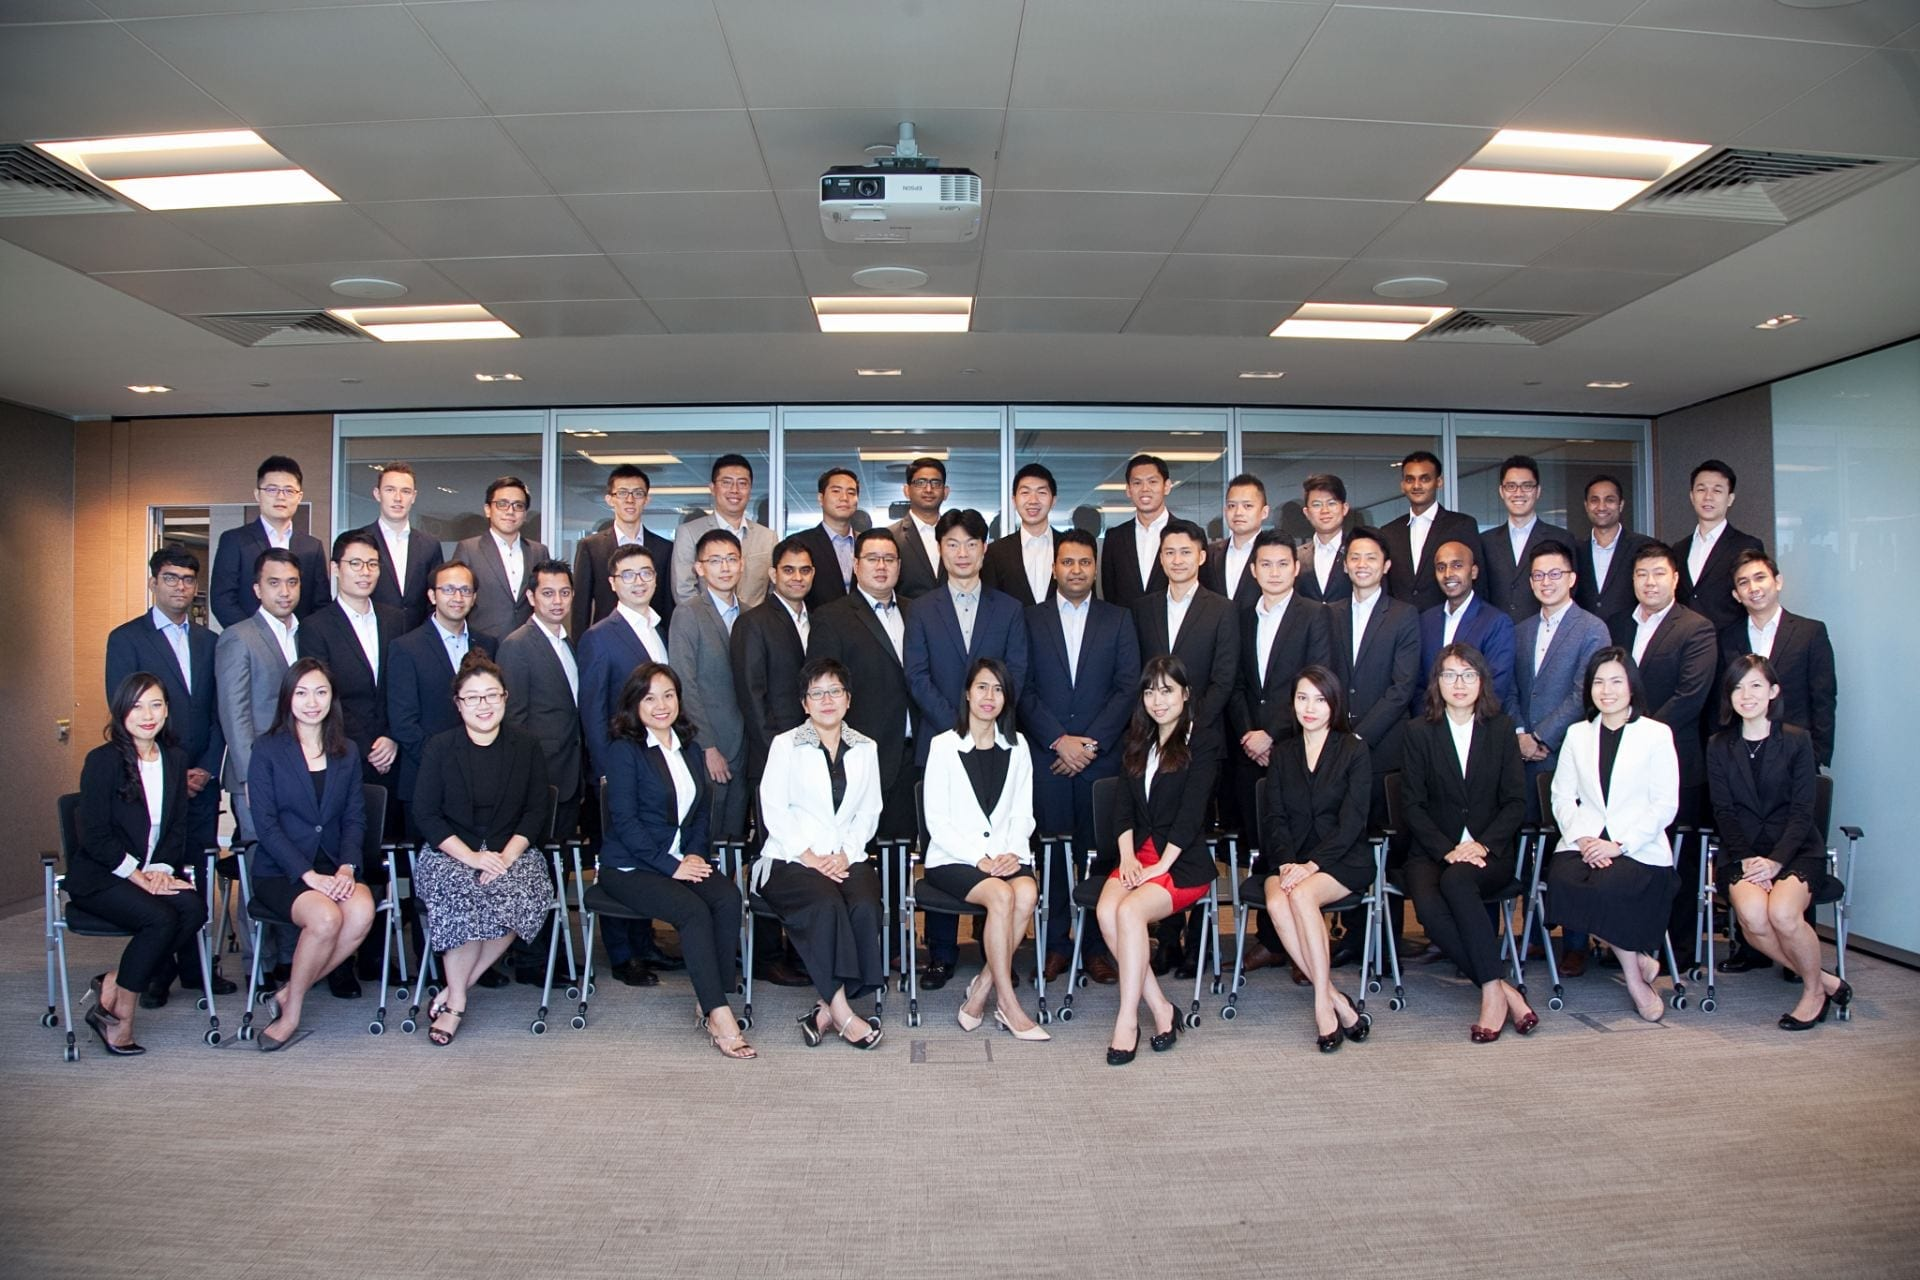 PMBA PIONEER COHORT SERIES: (4) EXPERIENCE BY LWIN LWIN AUNG